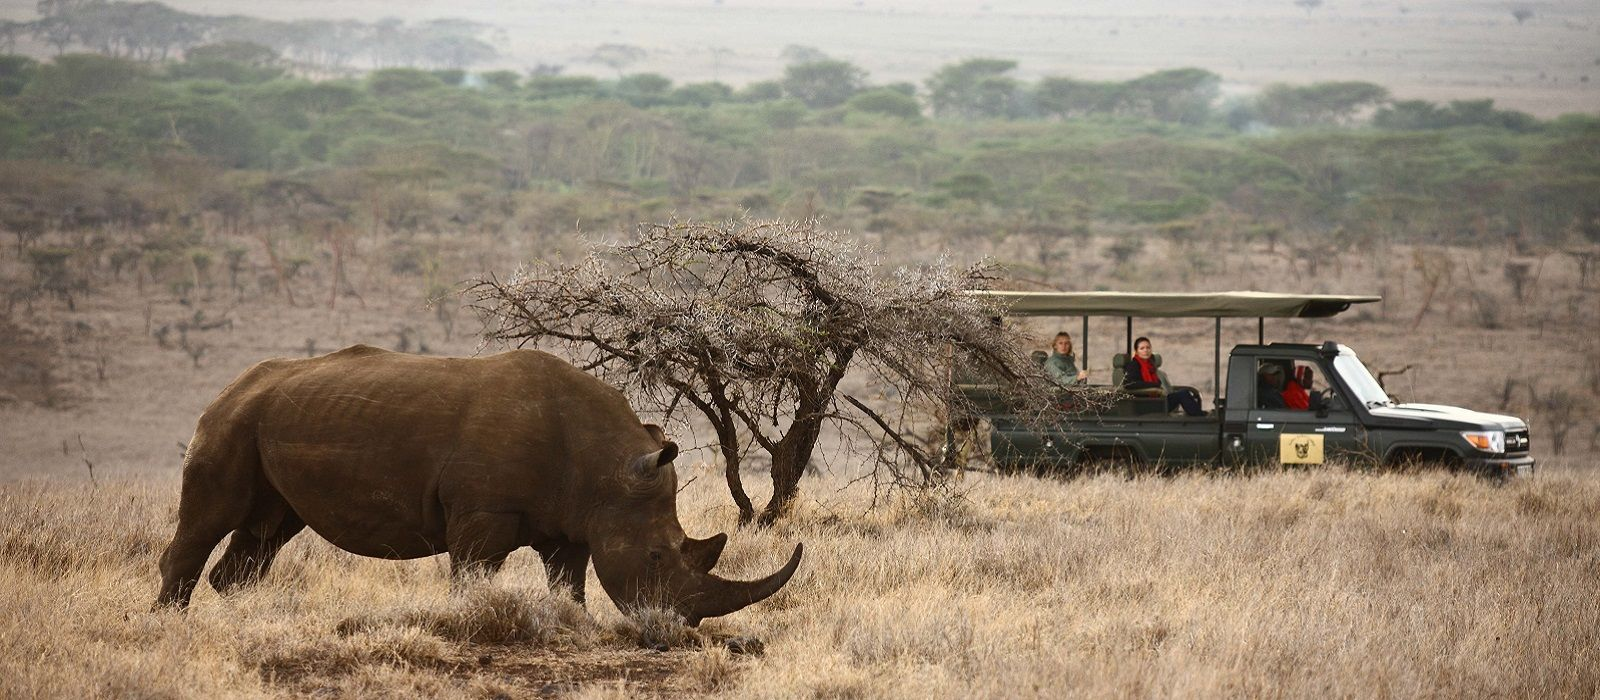 Enchanting Travels - Kenya Tours - Laikipia - Lewa Safari Camp - Wildlife Game Drive White Rhino